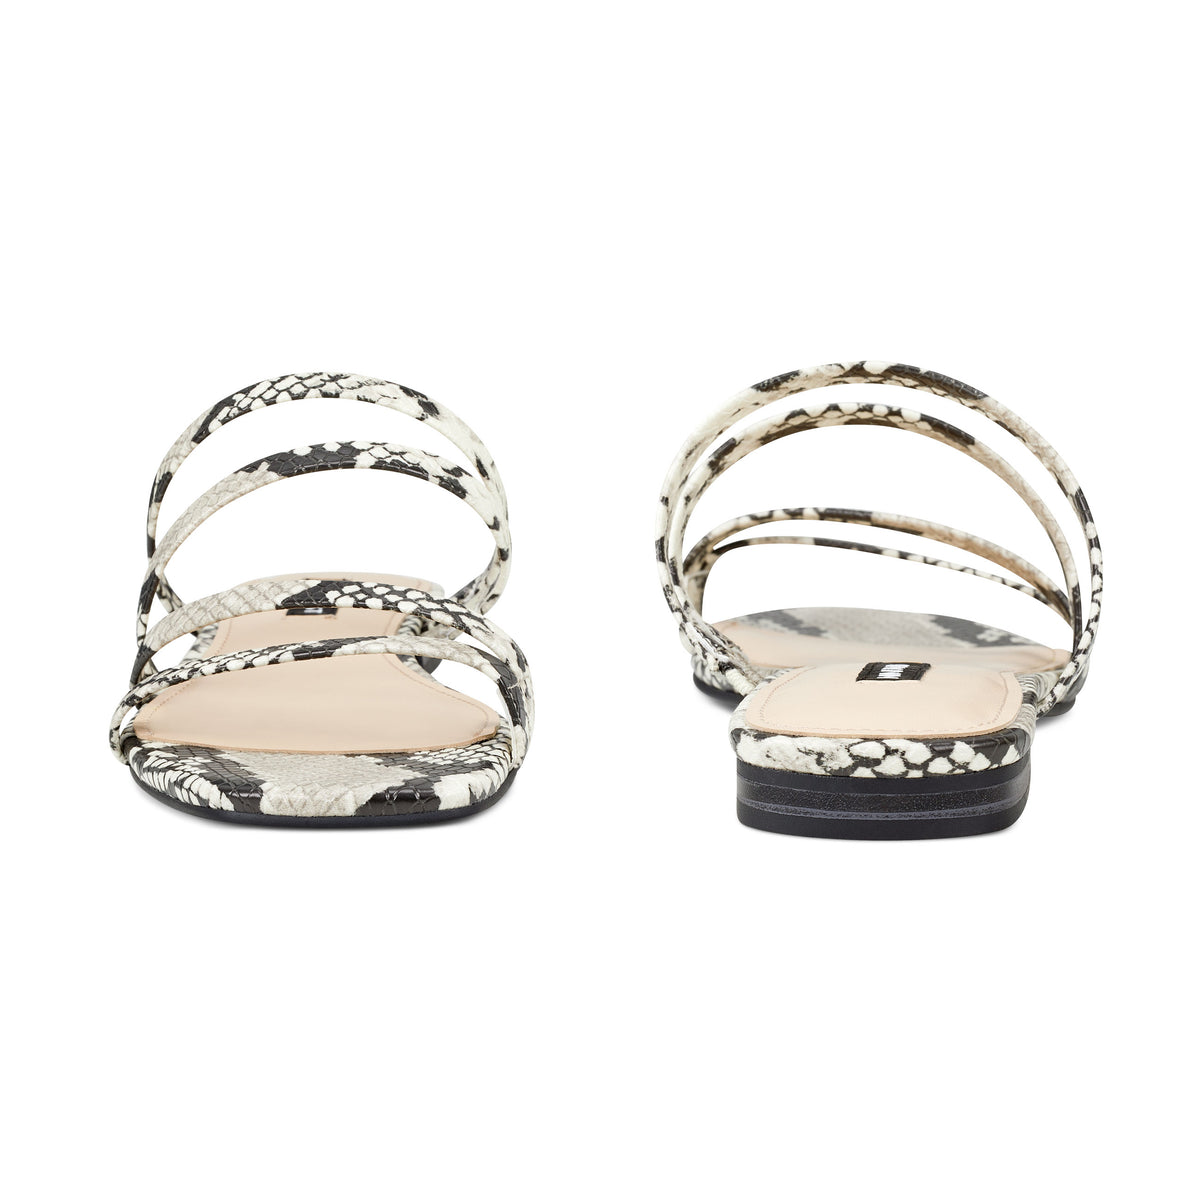 sean-flat-slide-sandals-in-taupe-snake-multi